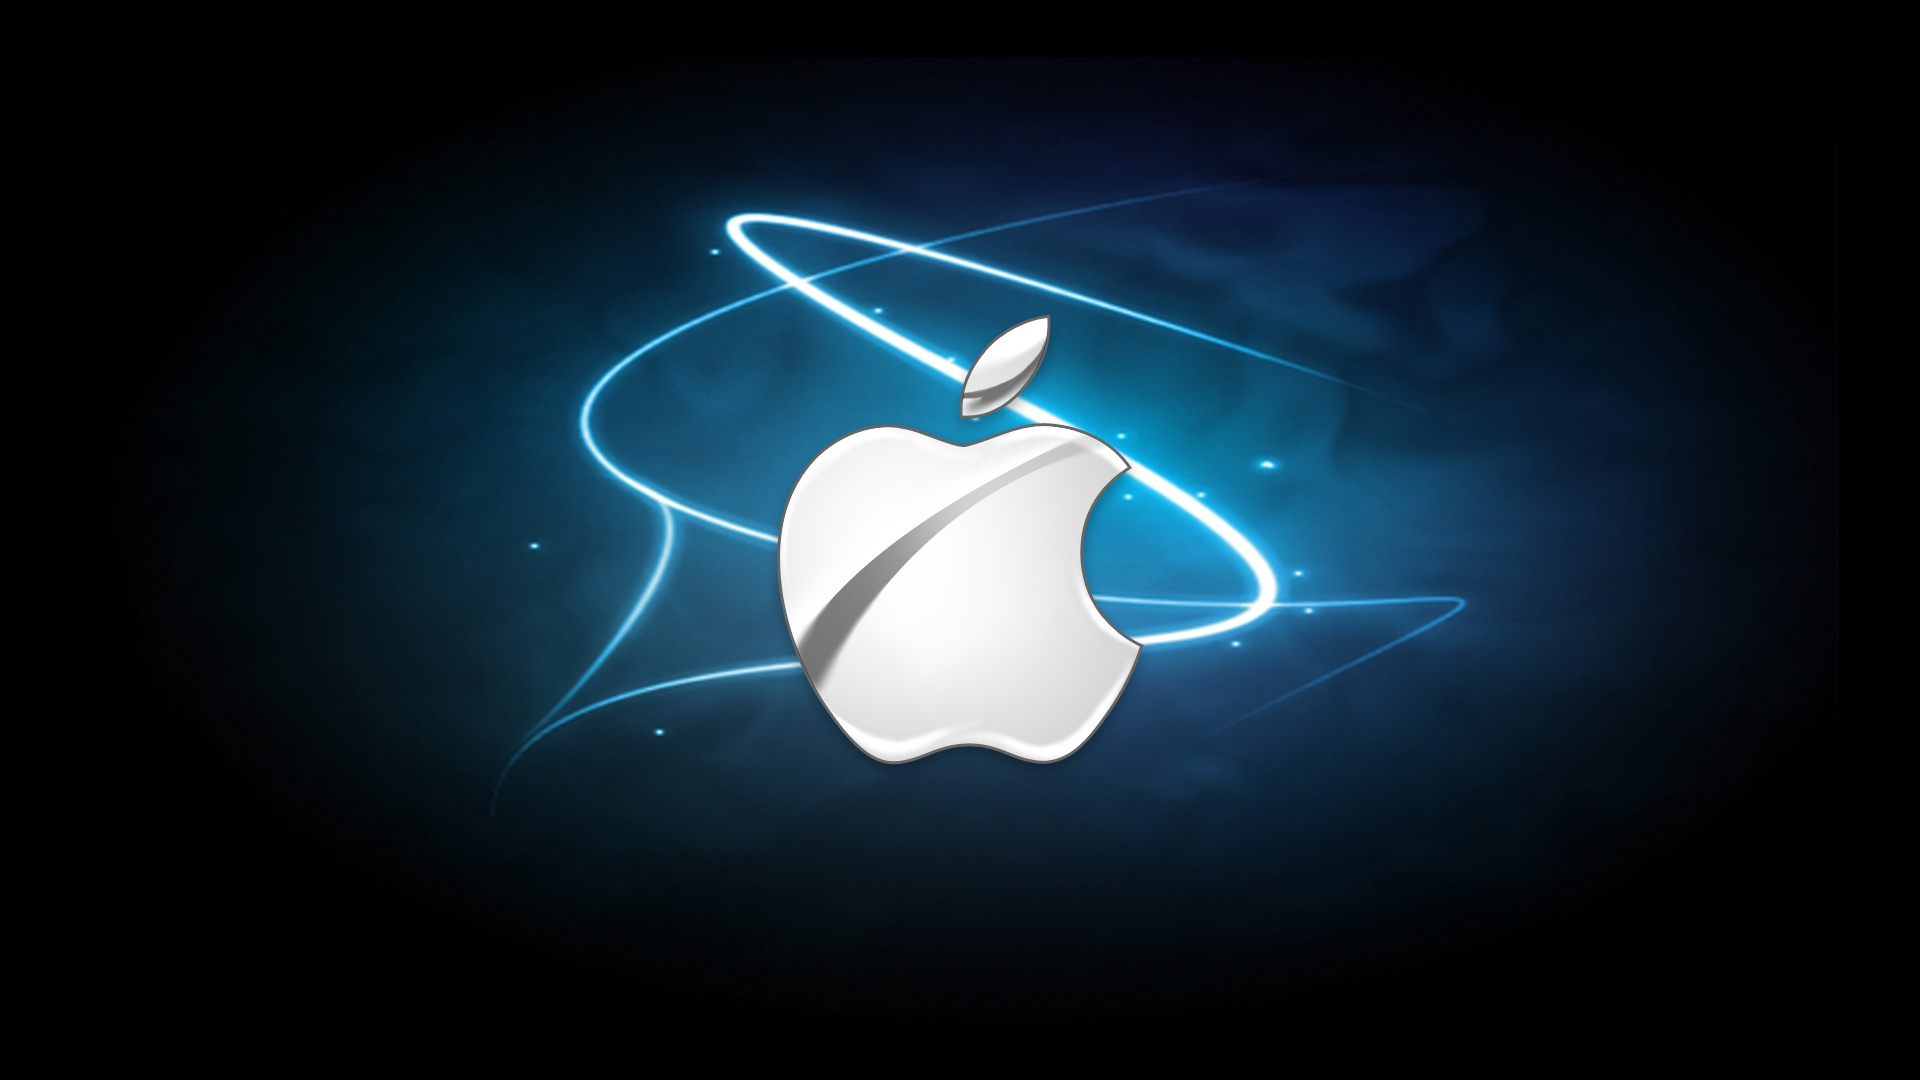 hd apple logo hd wallpaper share this awesome hd background on 1920x1080